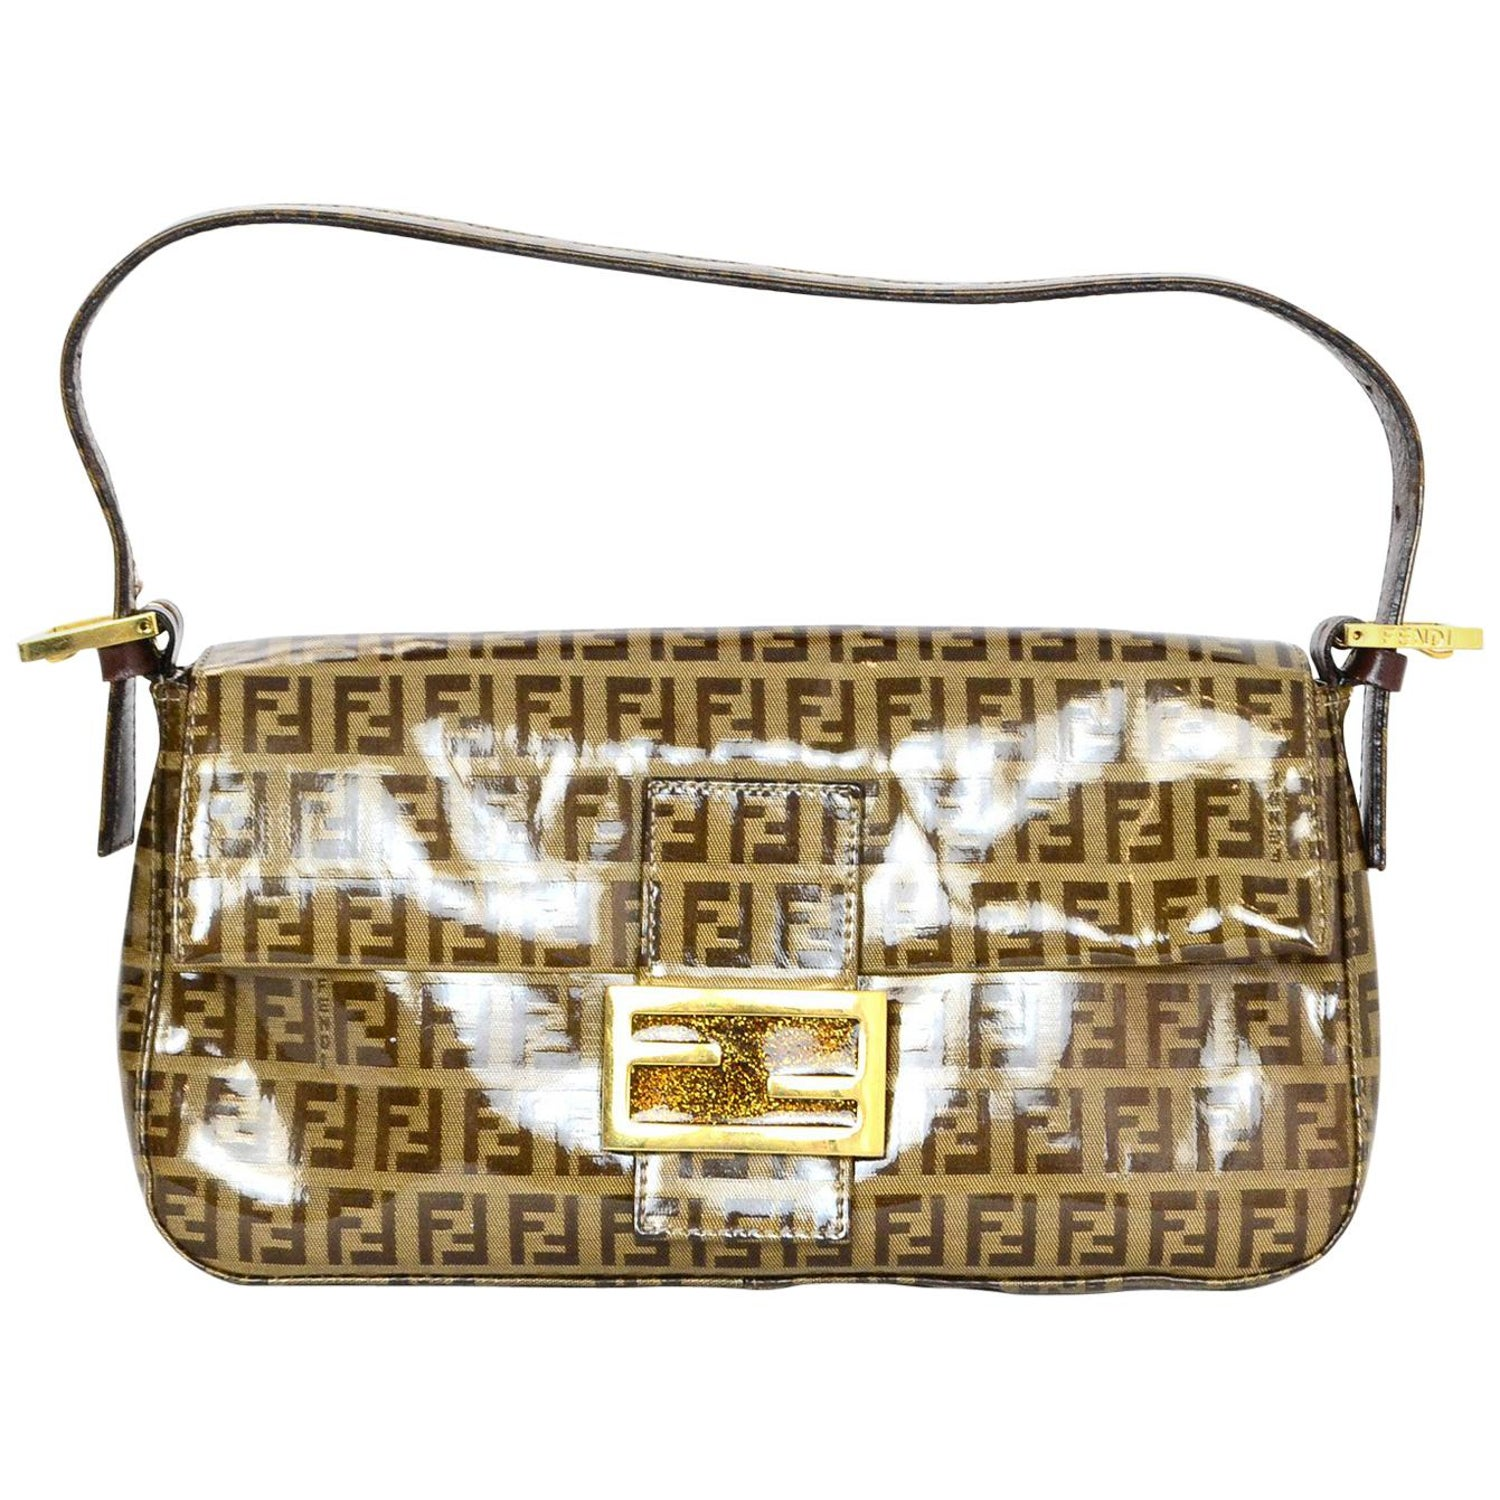 a55117aca3 Fendi Tan Coated Canvas Monogram Zucca Baguette Bag w  Gold Glitter Logo  Buckle at 1stdibs